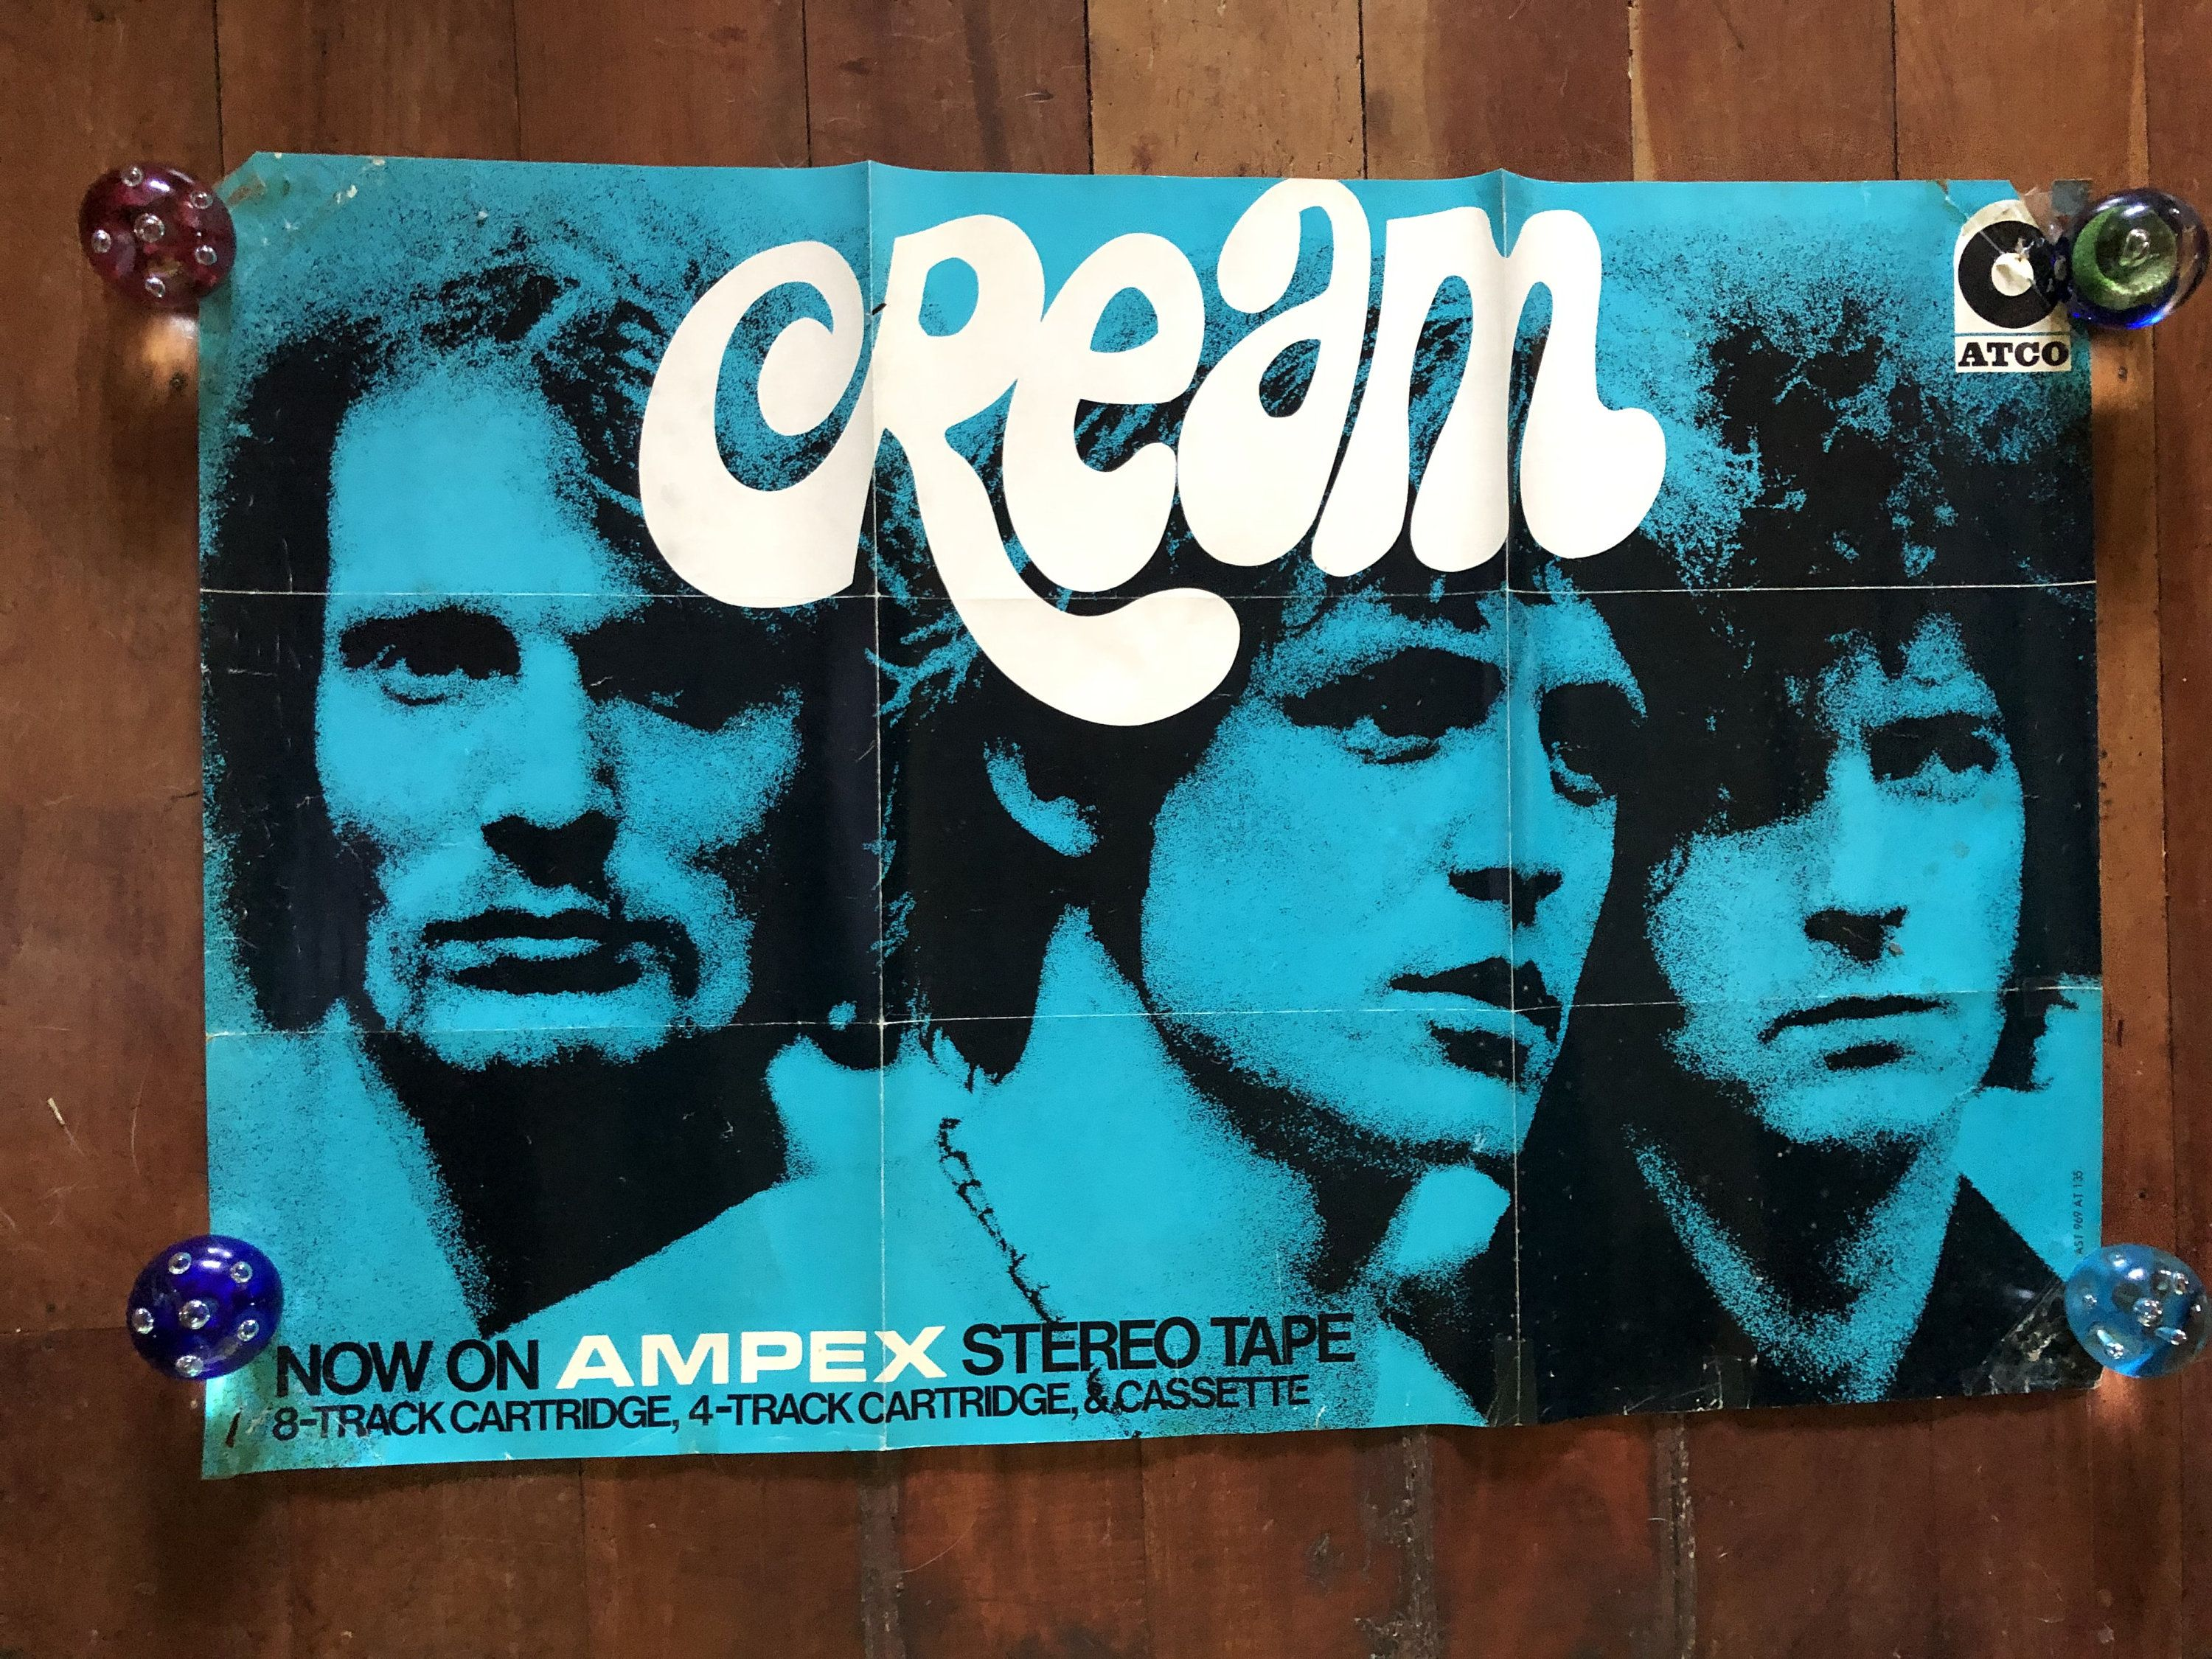 Cream 1967 Ampex Records Tapes Atco Original Rare Vintage Etsy In 2020 Vintage Music Vintage Music Posters Old Fonts